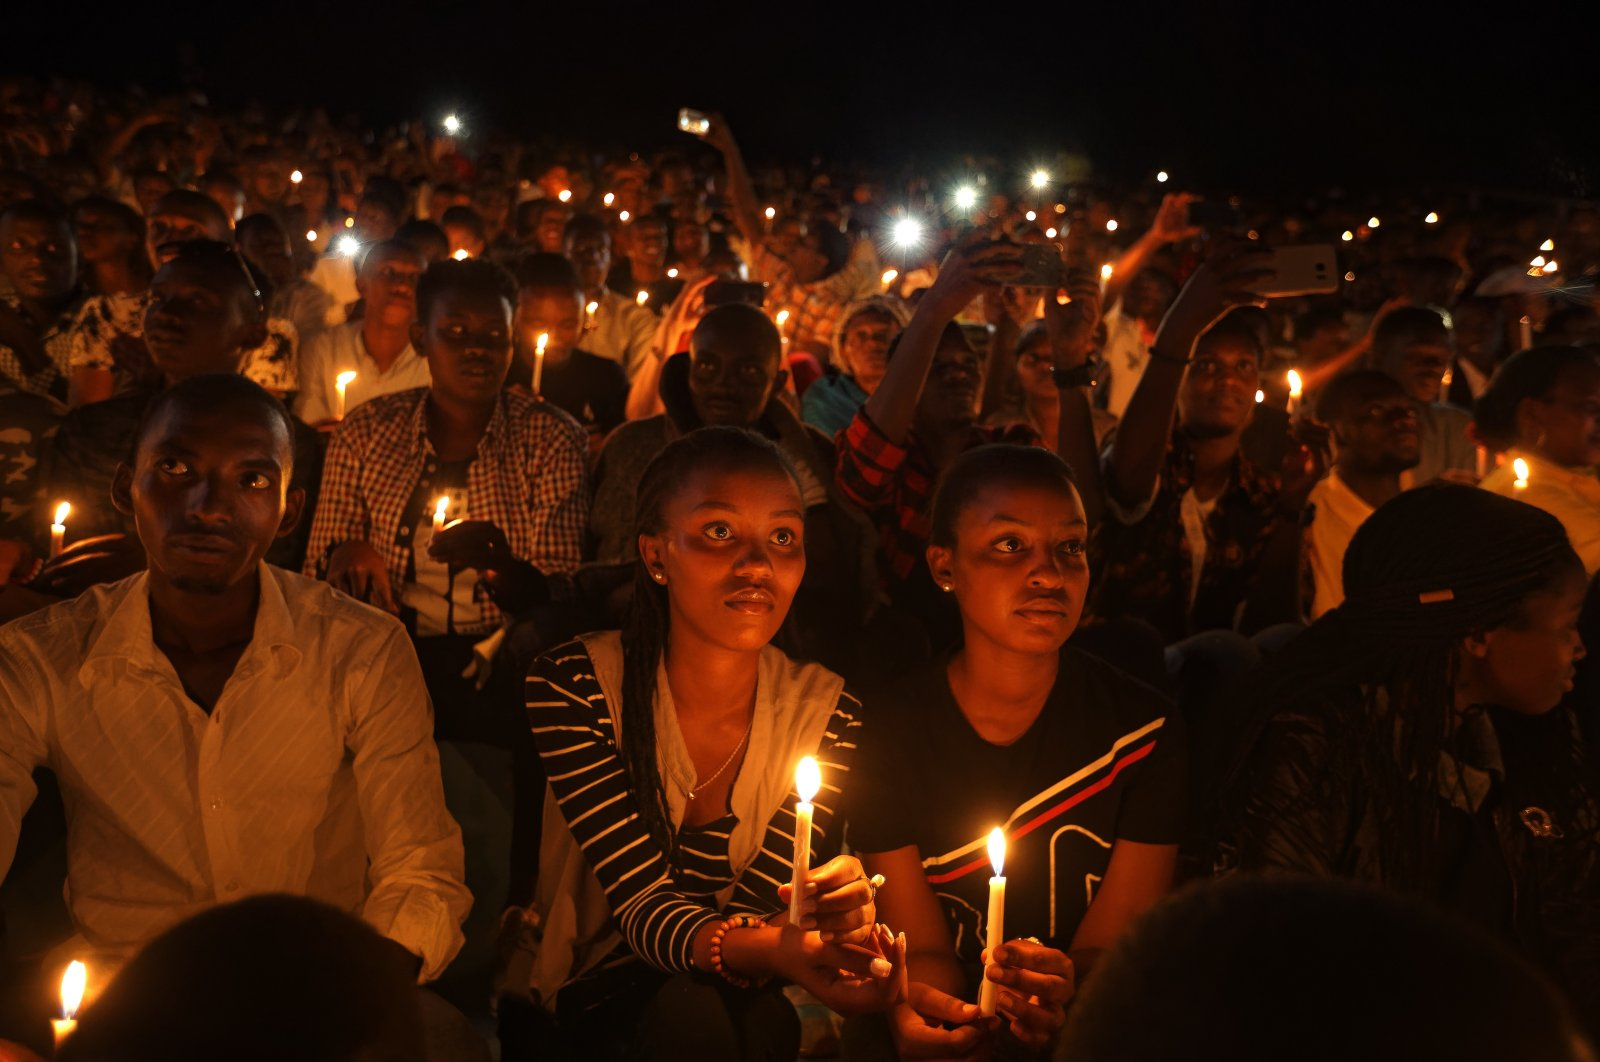 People attend a candlelight vigil during a memorial service marking 25 years since the 1994 Rwanda genocide, at Amahoro stadium in the capital Kigali, Rwanda, April 7, 2019. (AP Photo)